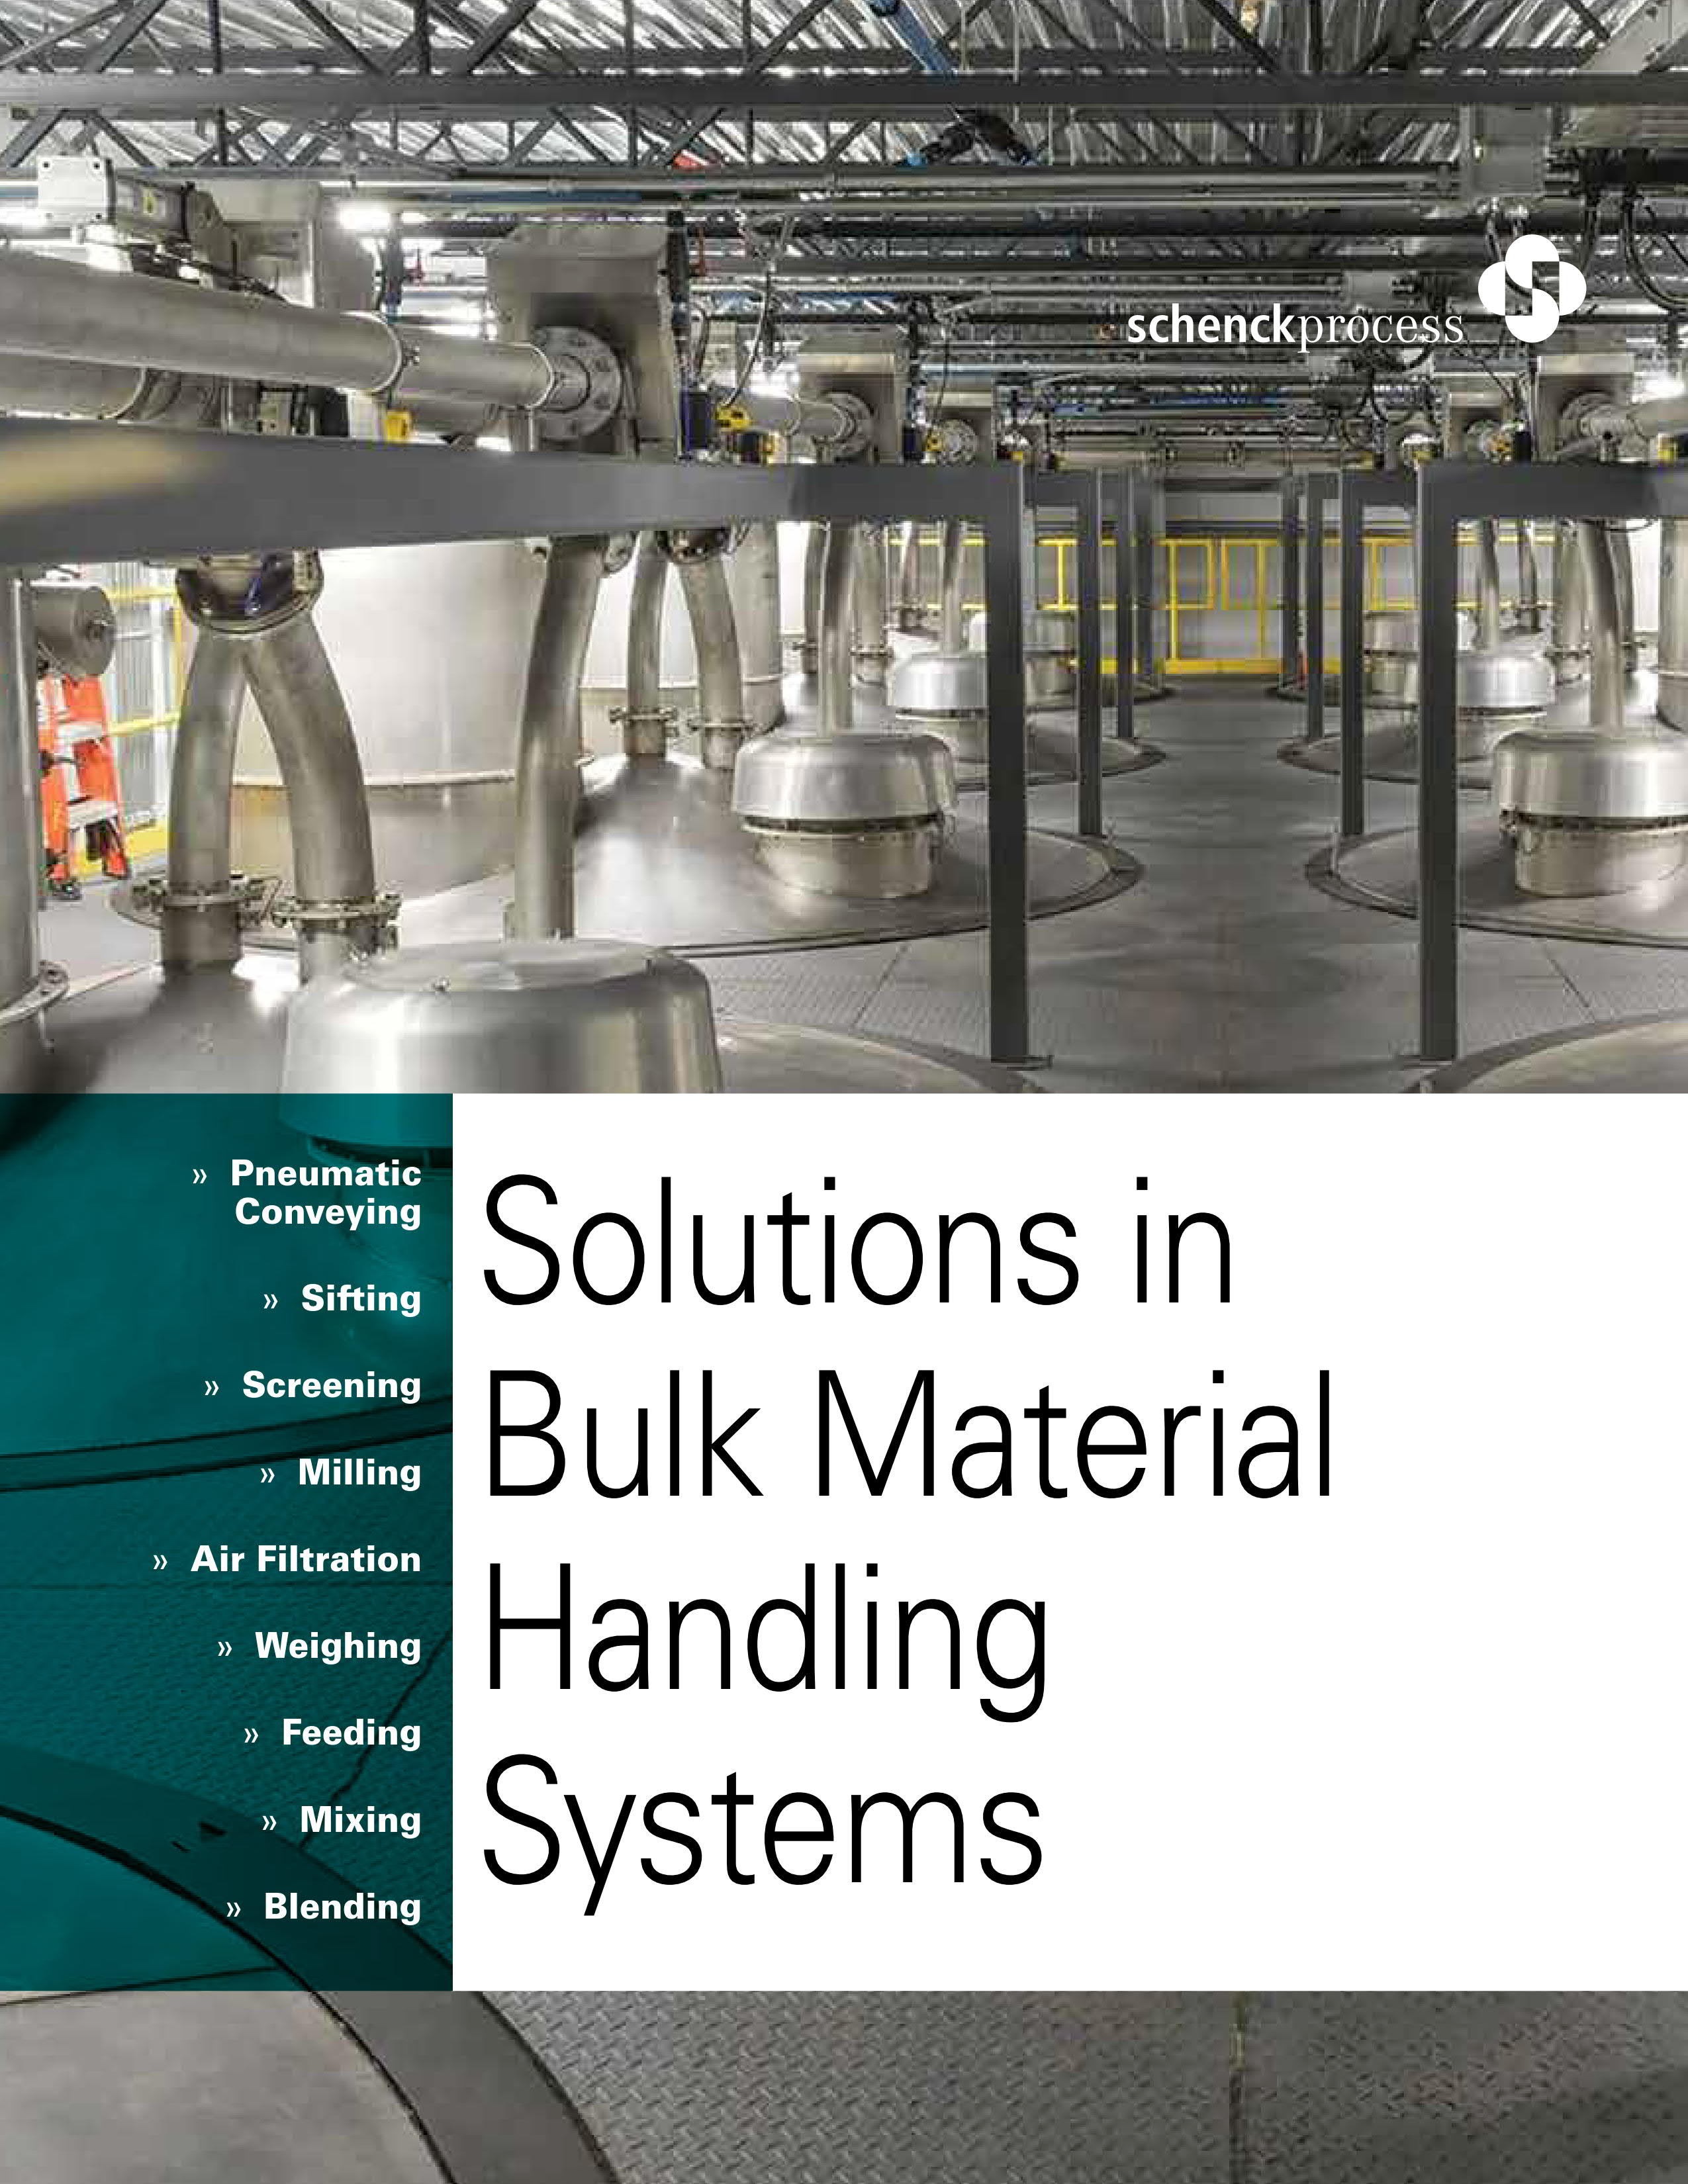 Solutions in Bulk Material Handling Systems